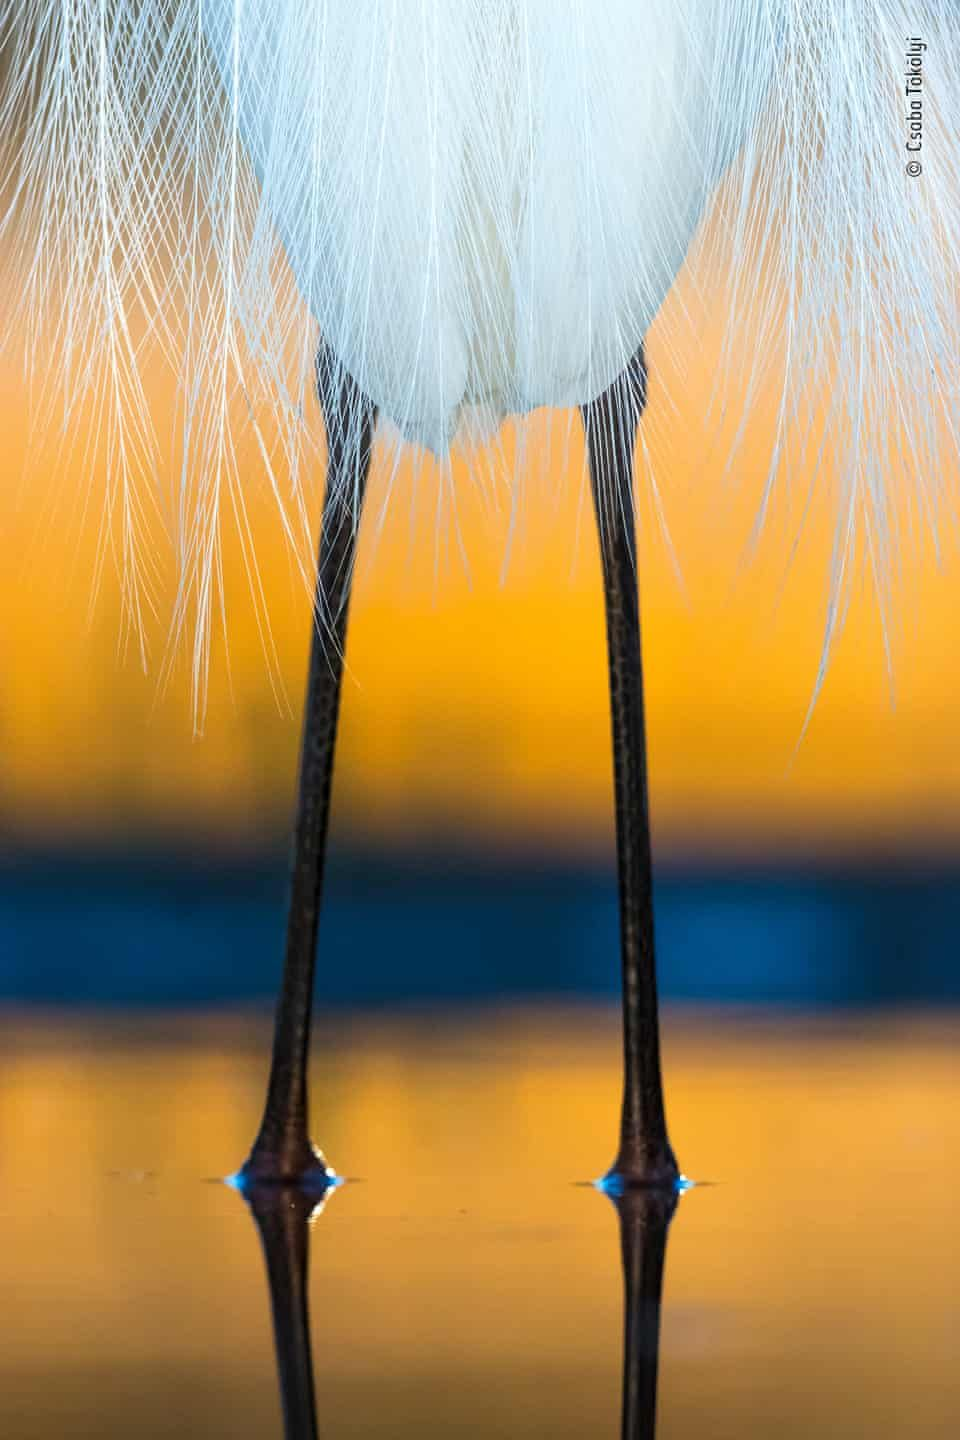 Wildlife Photographer Of The Year Lumix People S Choice Shortlist 2019 In Pictures Wildlife Photography Photography Awards Birds